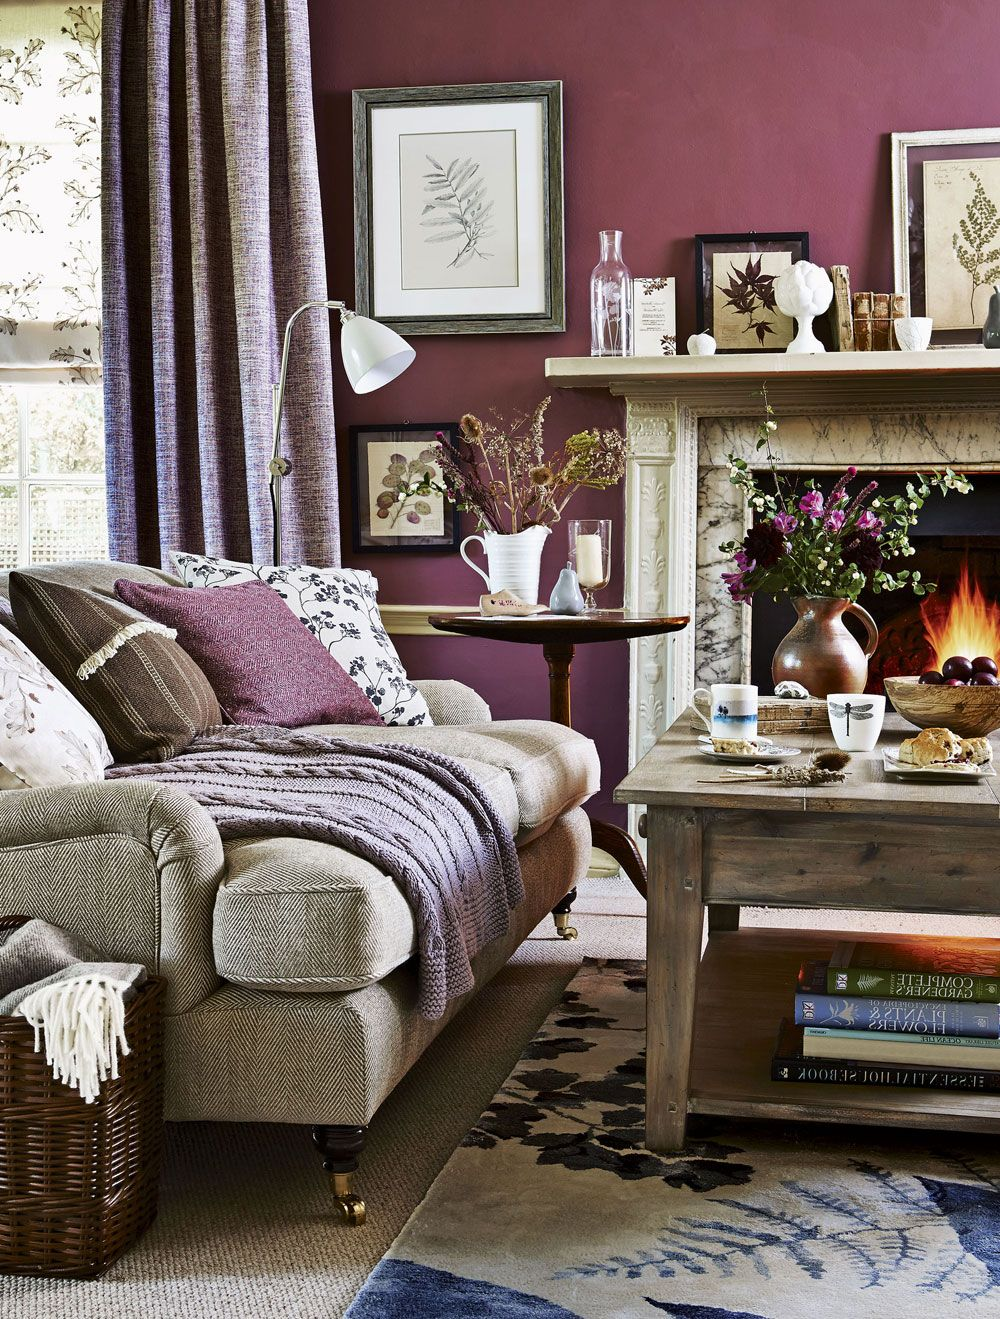 Color palette for home interiors  An autumn colour palette helps create a cosy look at home  Snug